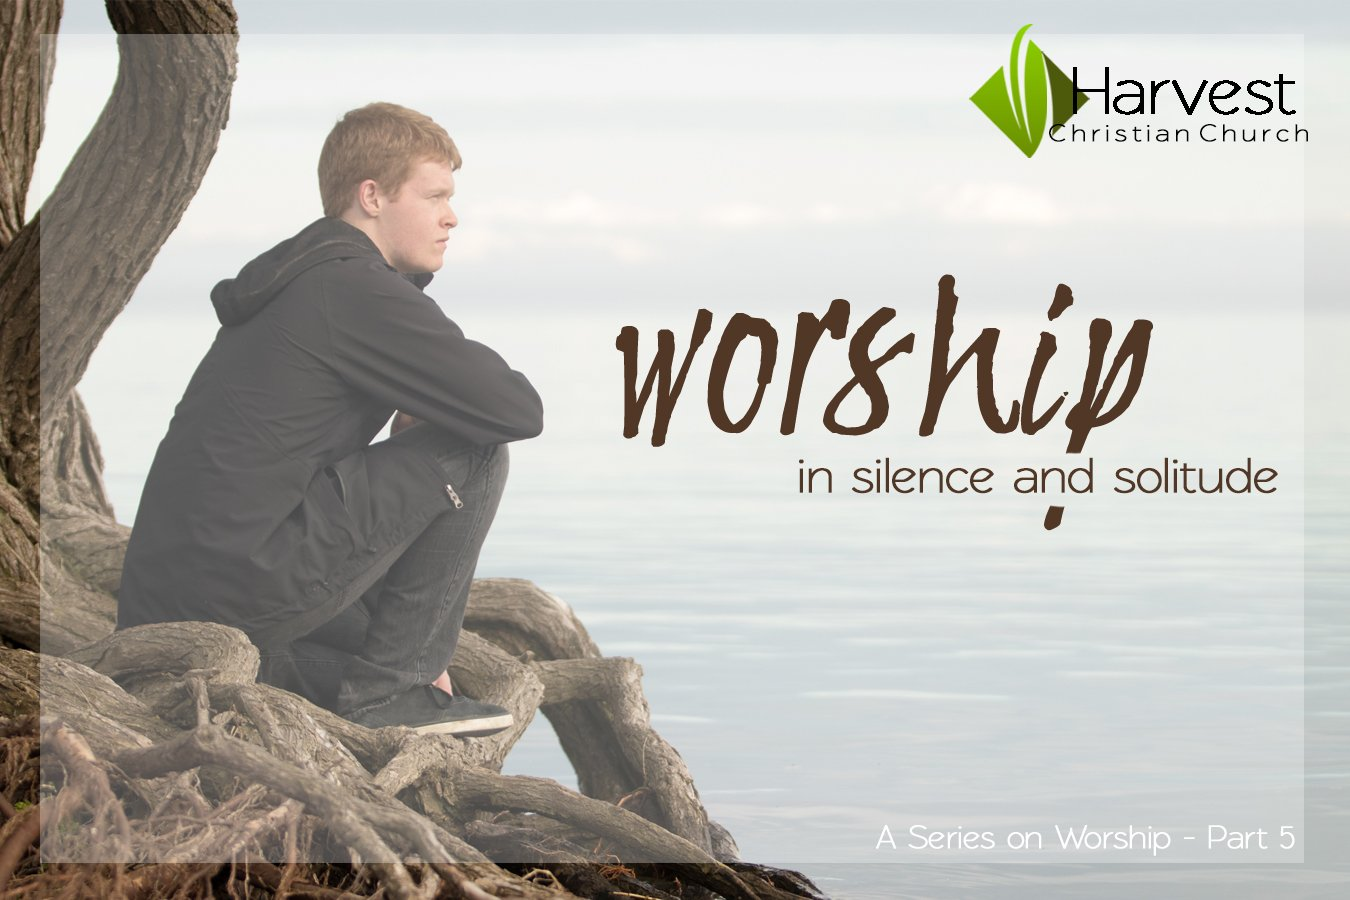 Worship in Silence and Solitude